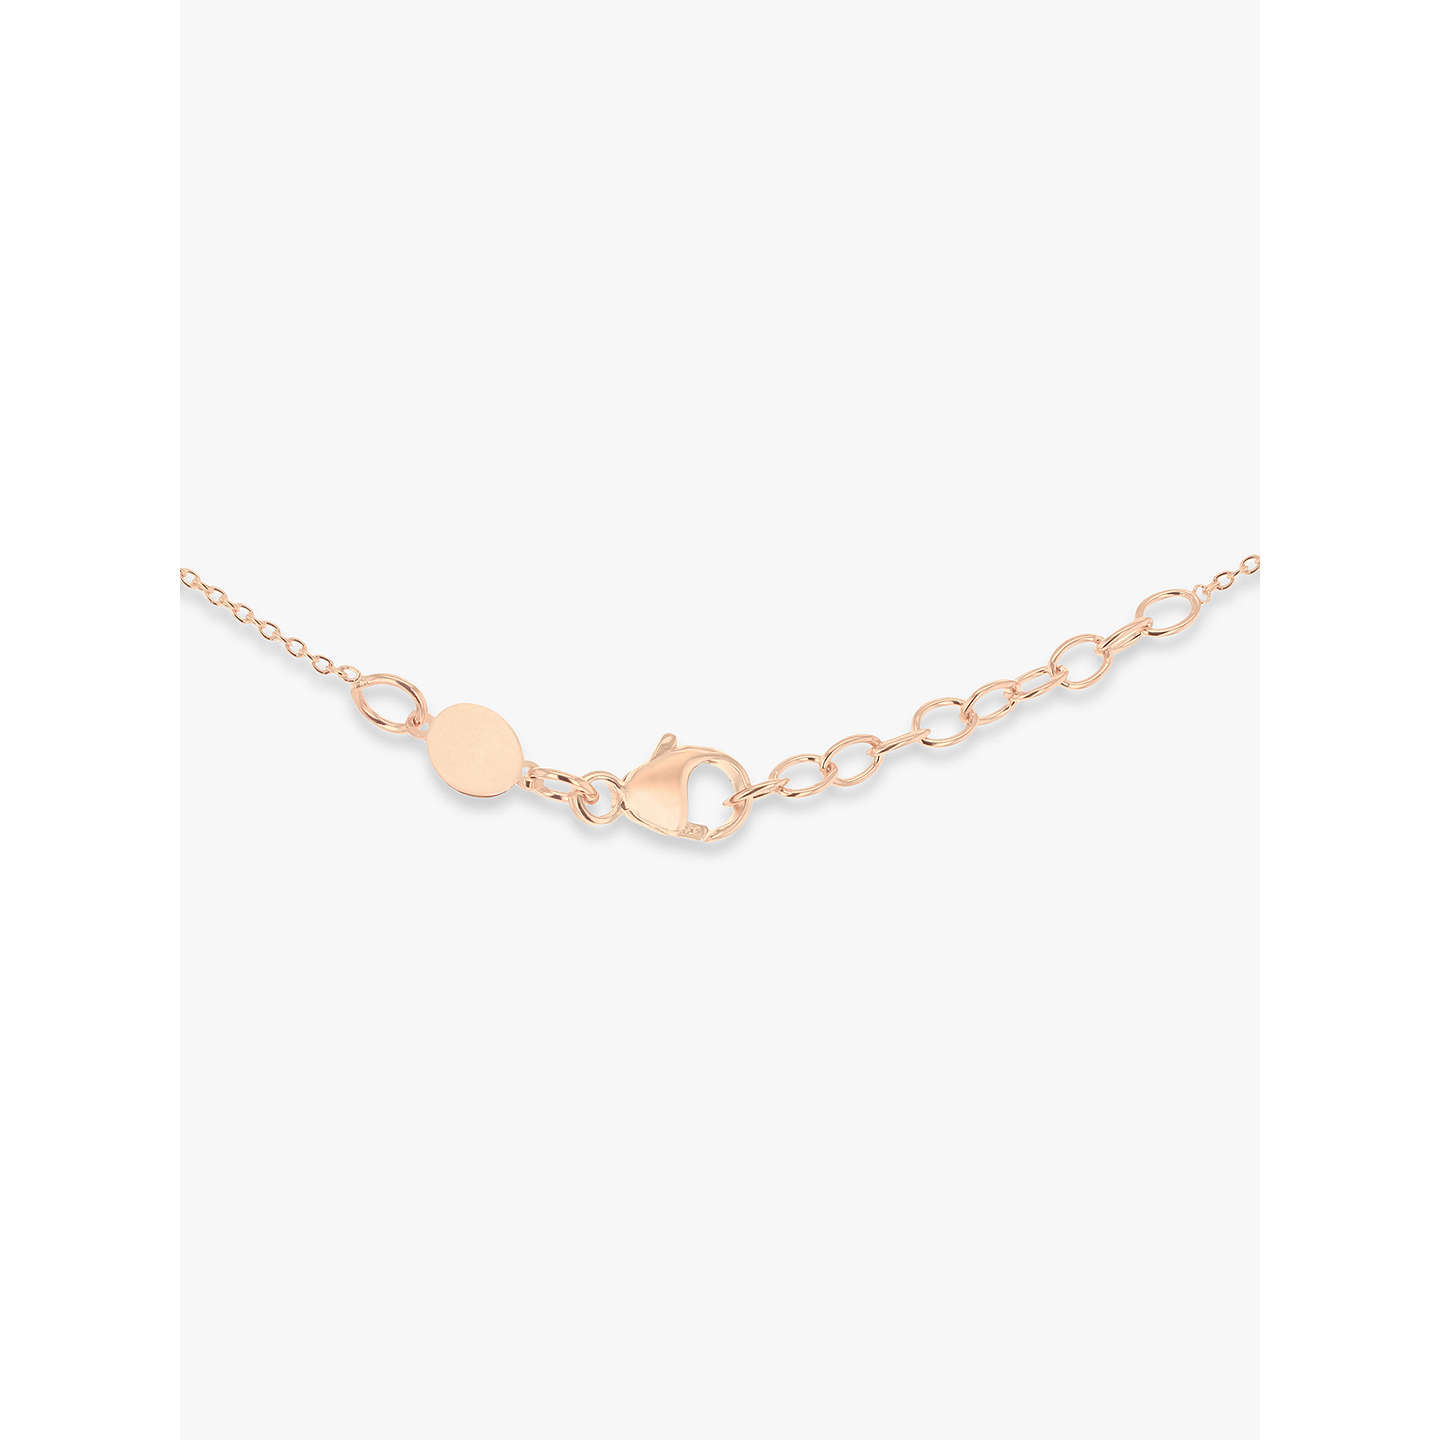 BuyIBB Personalised 9ct Gold Vertical Bar Initial Pendant Necklace, Rose Gold Online at johnlewis.com